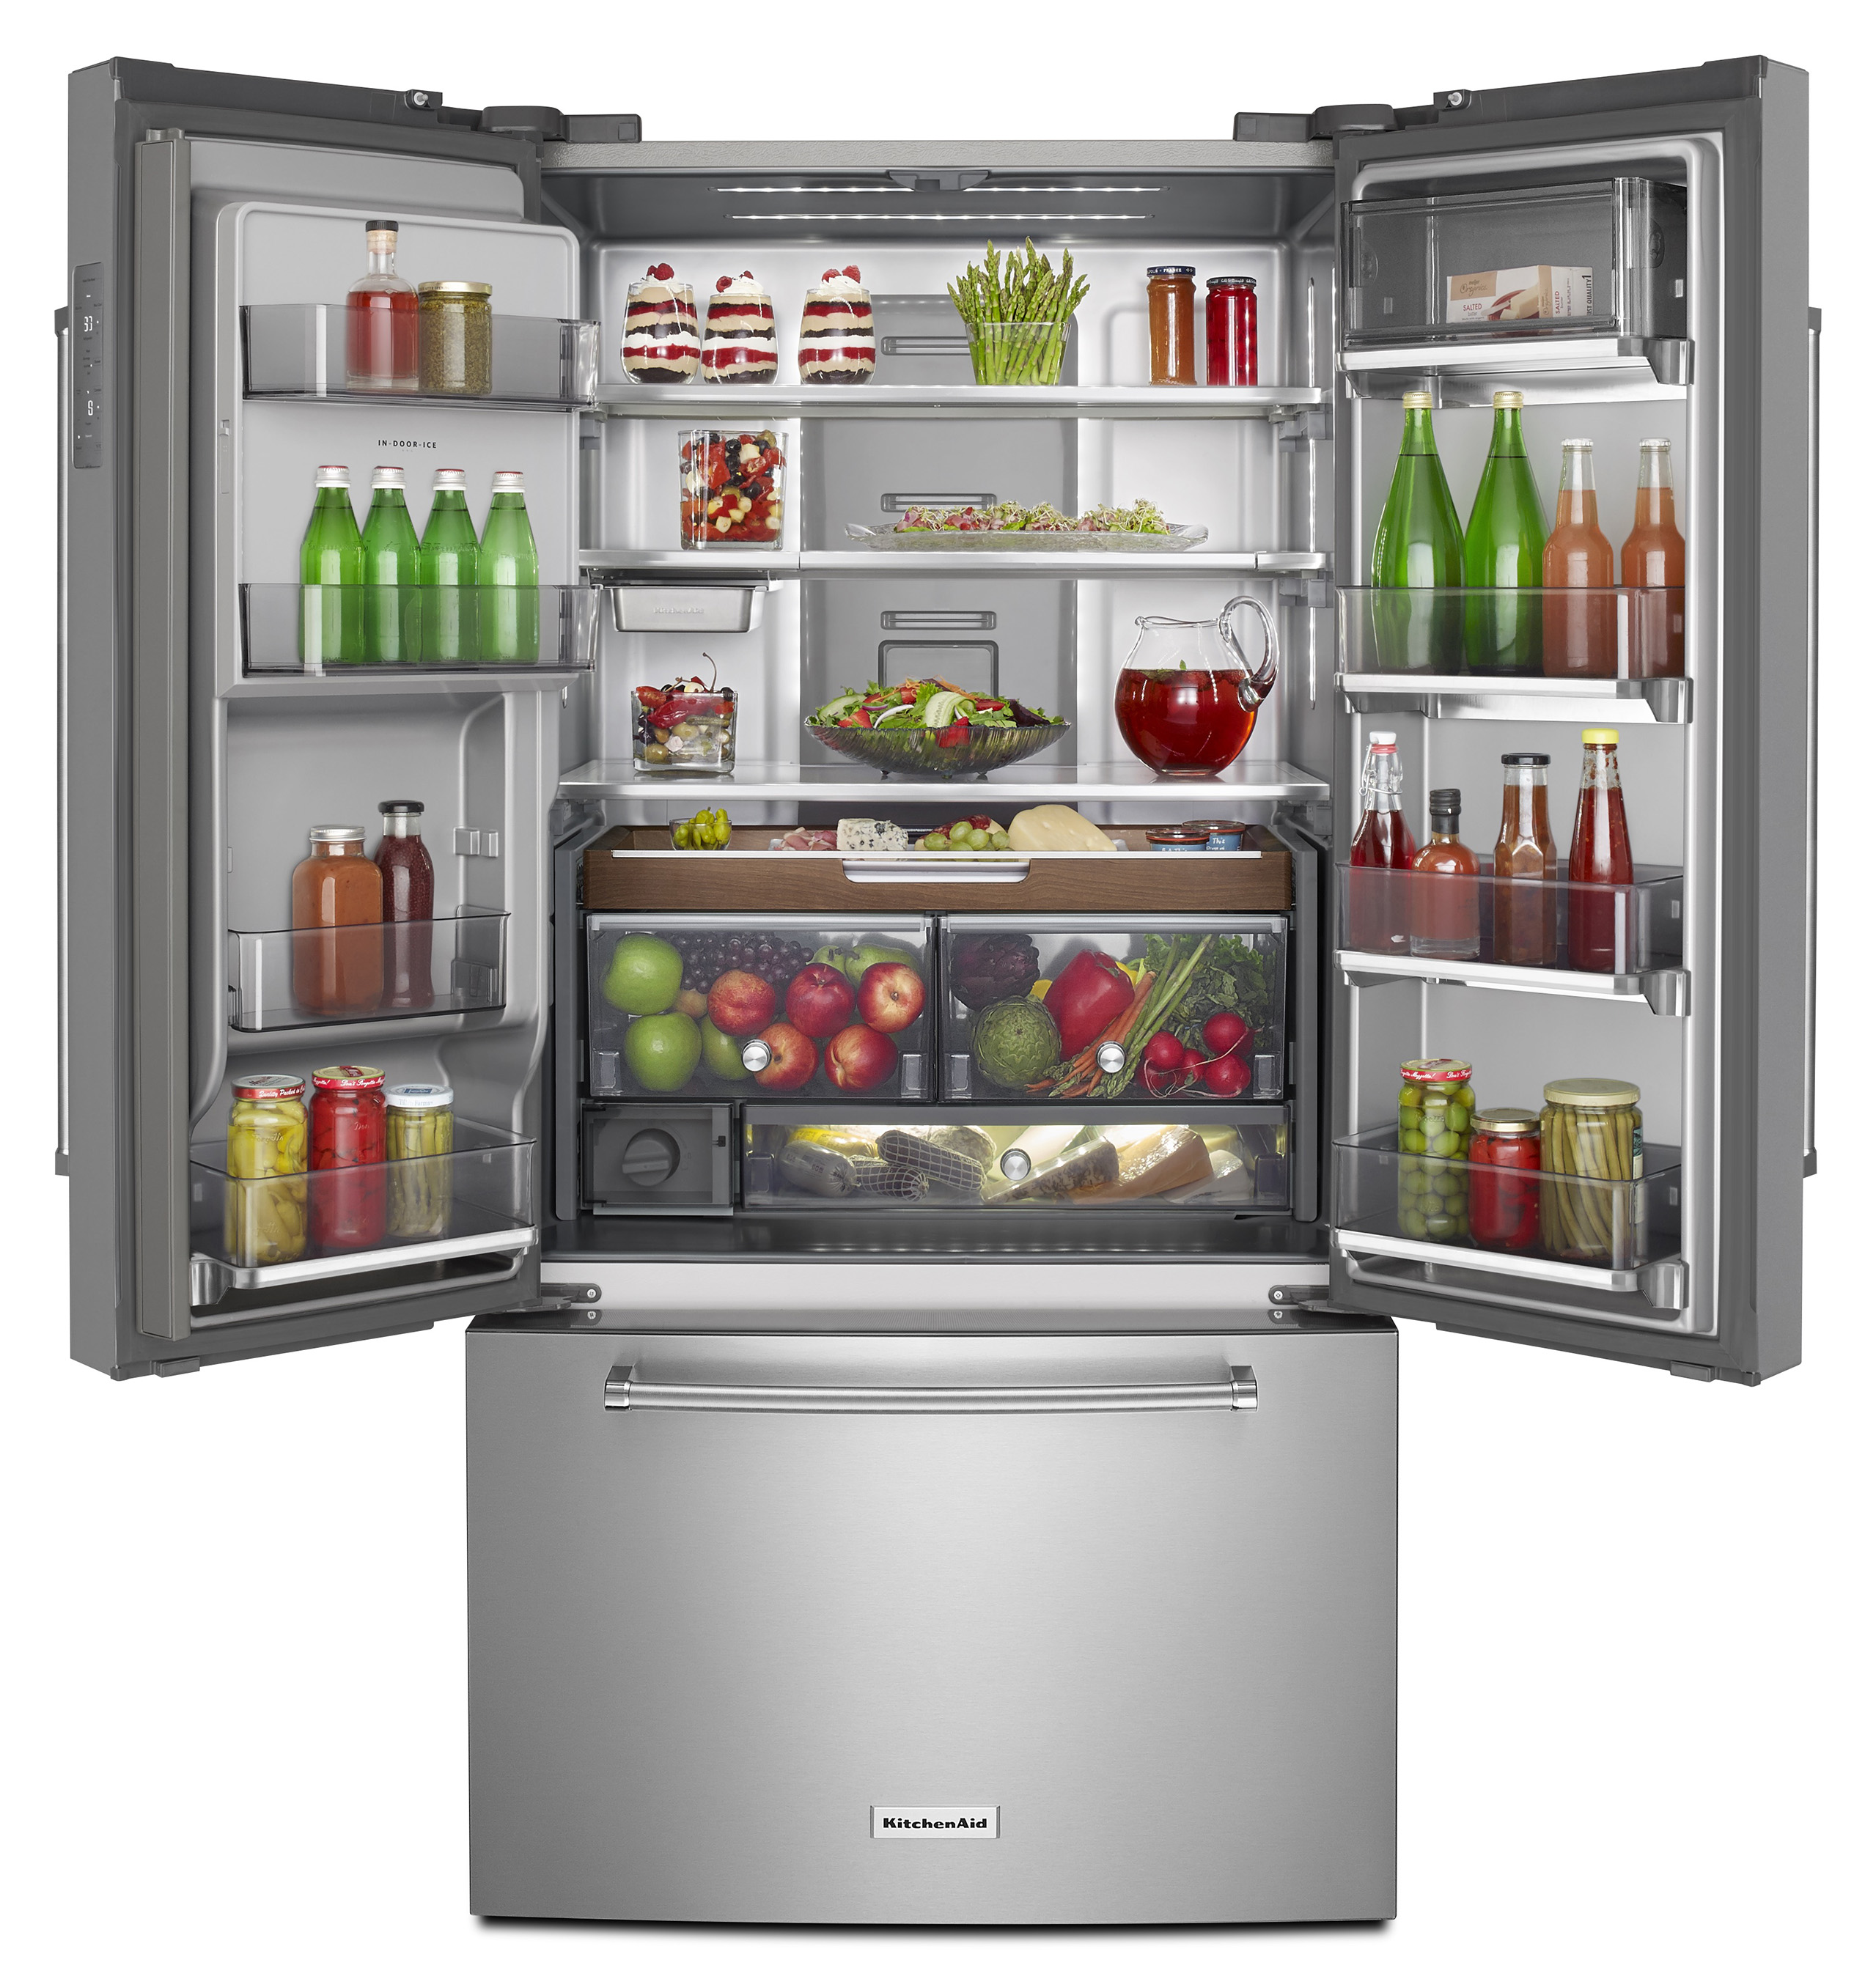 Kitchenaid introduces three door free standing refrigerator rubansaba